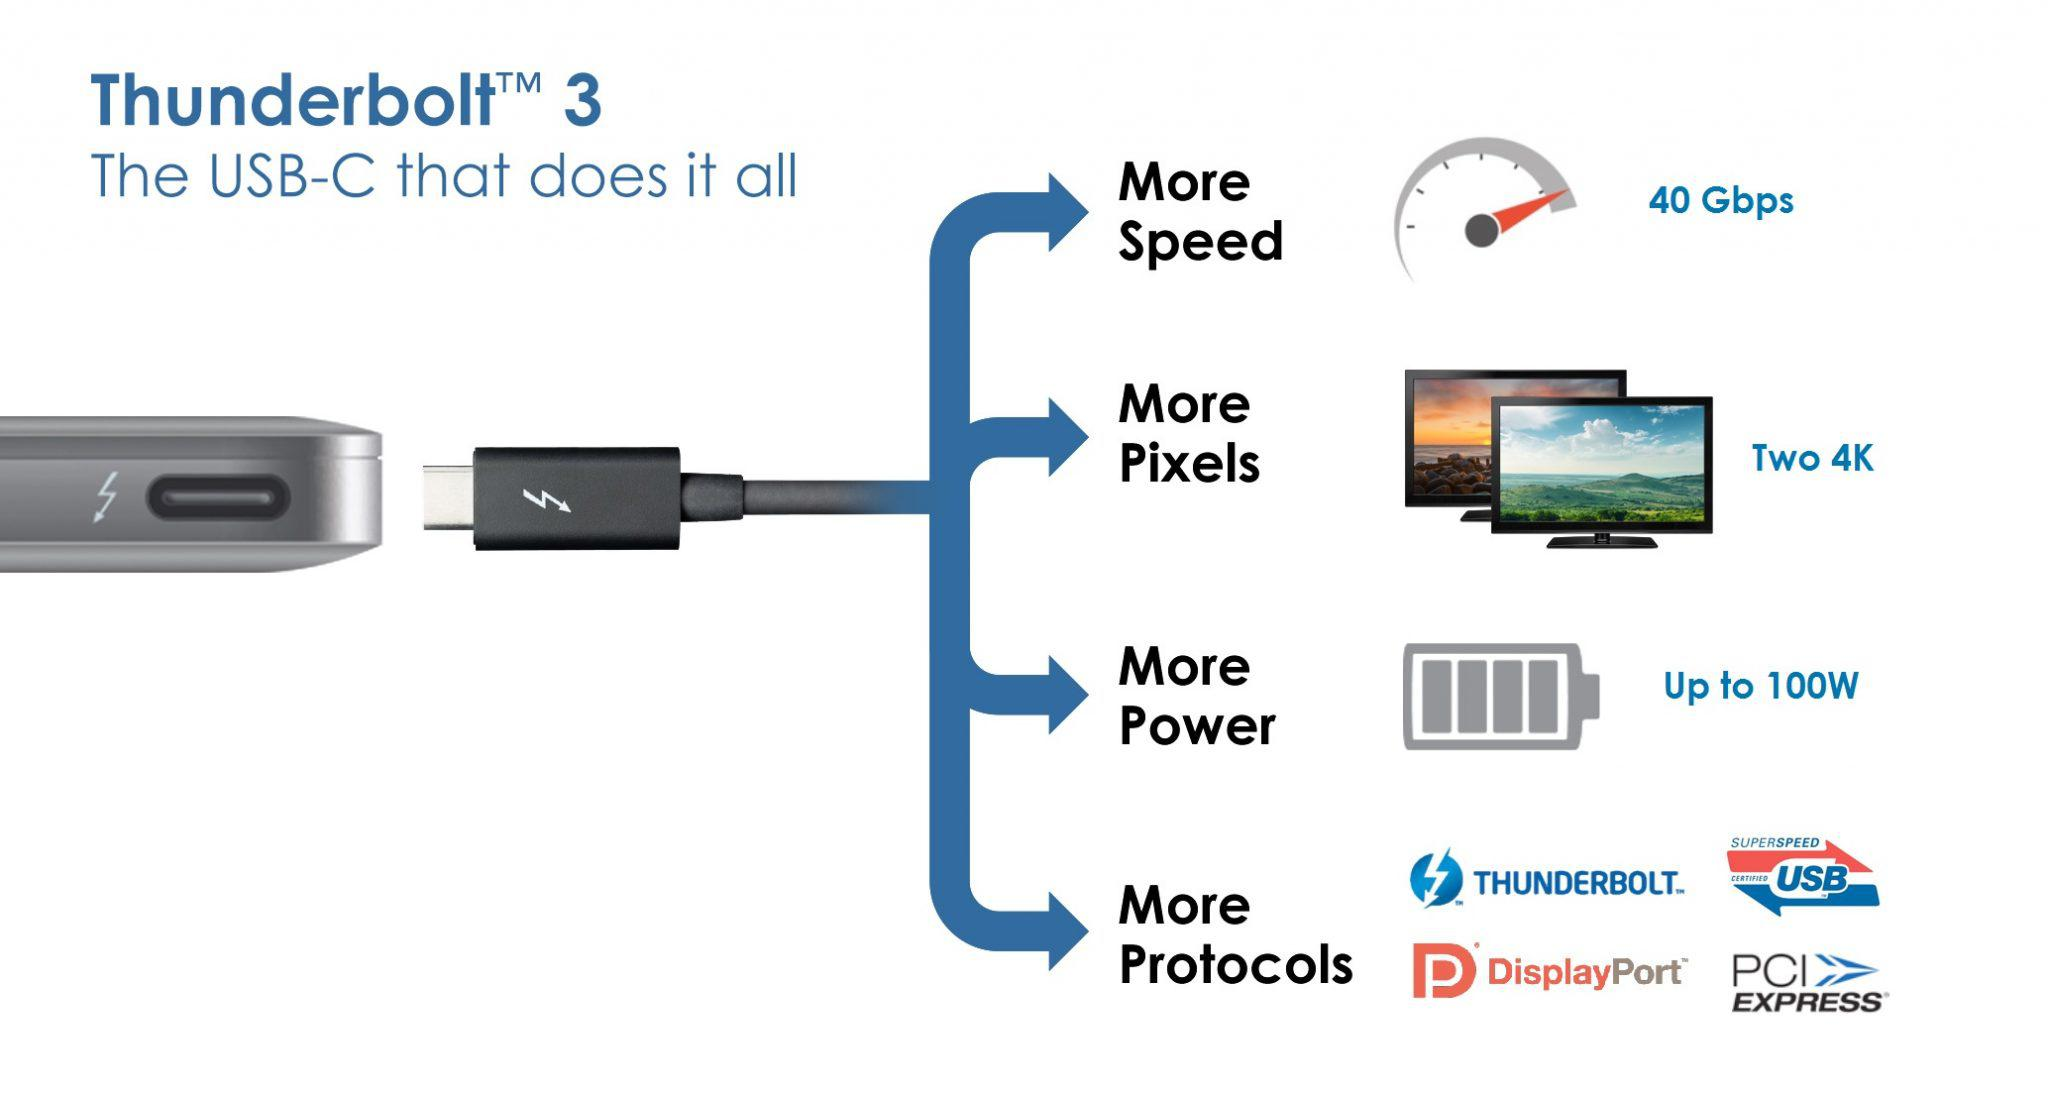 Thunderbolt 3 is the USB-C that does it all